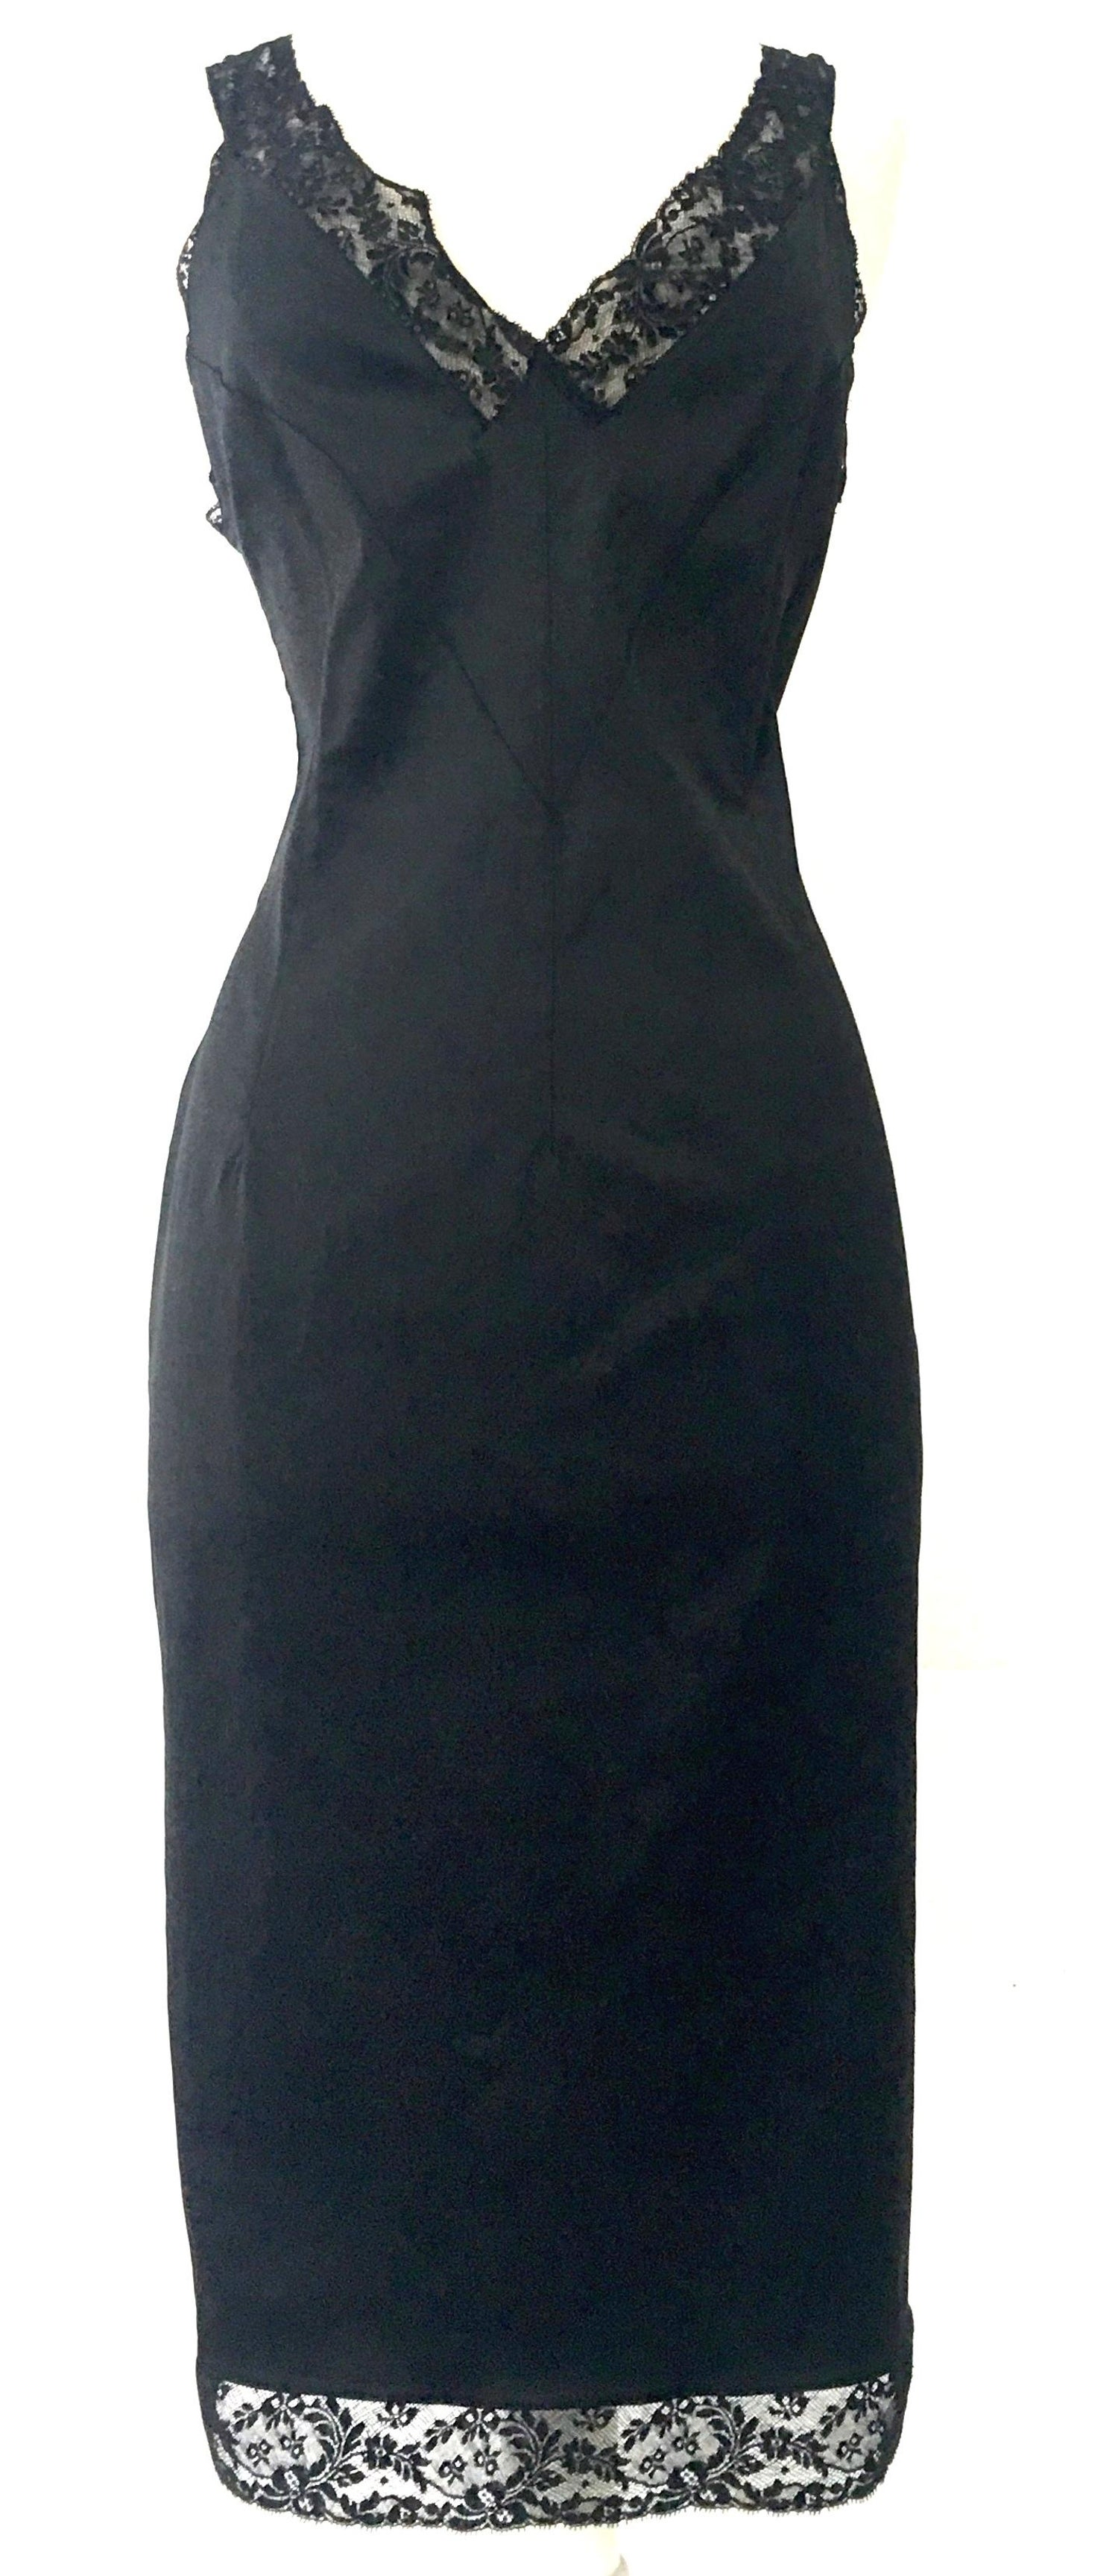 39db55b922 90'S Classic Dolce and Gabbana Black Fitted Slip Dress Sz-40 For Sale at  1stdibs